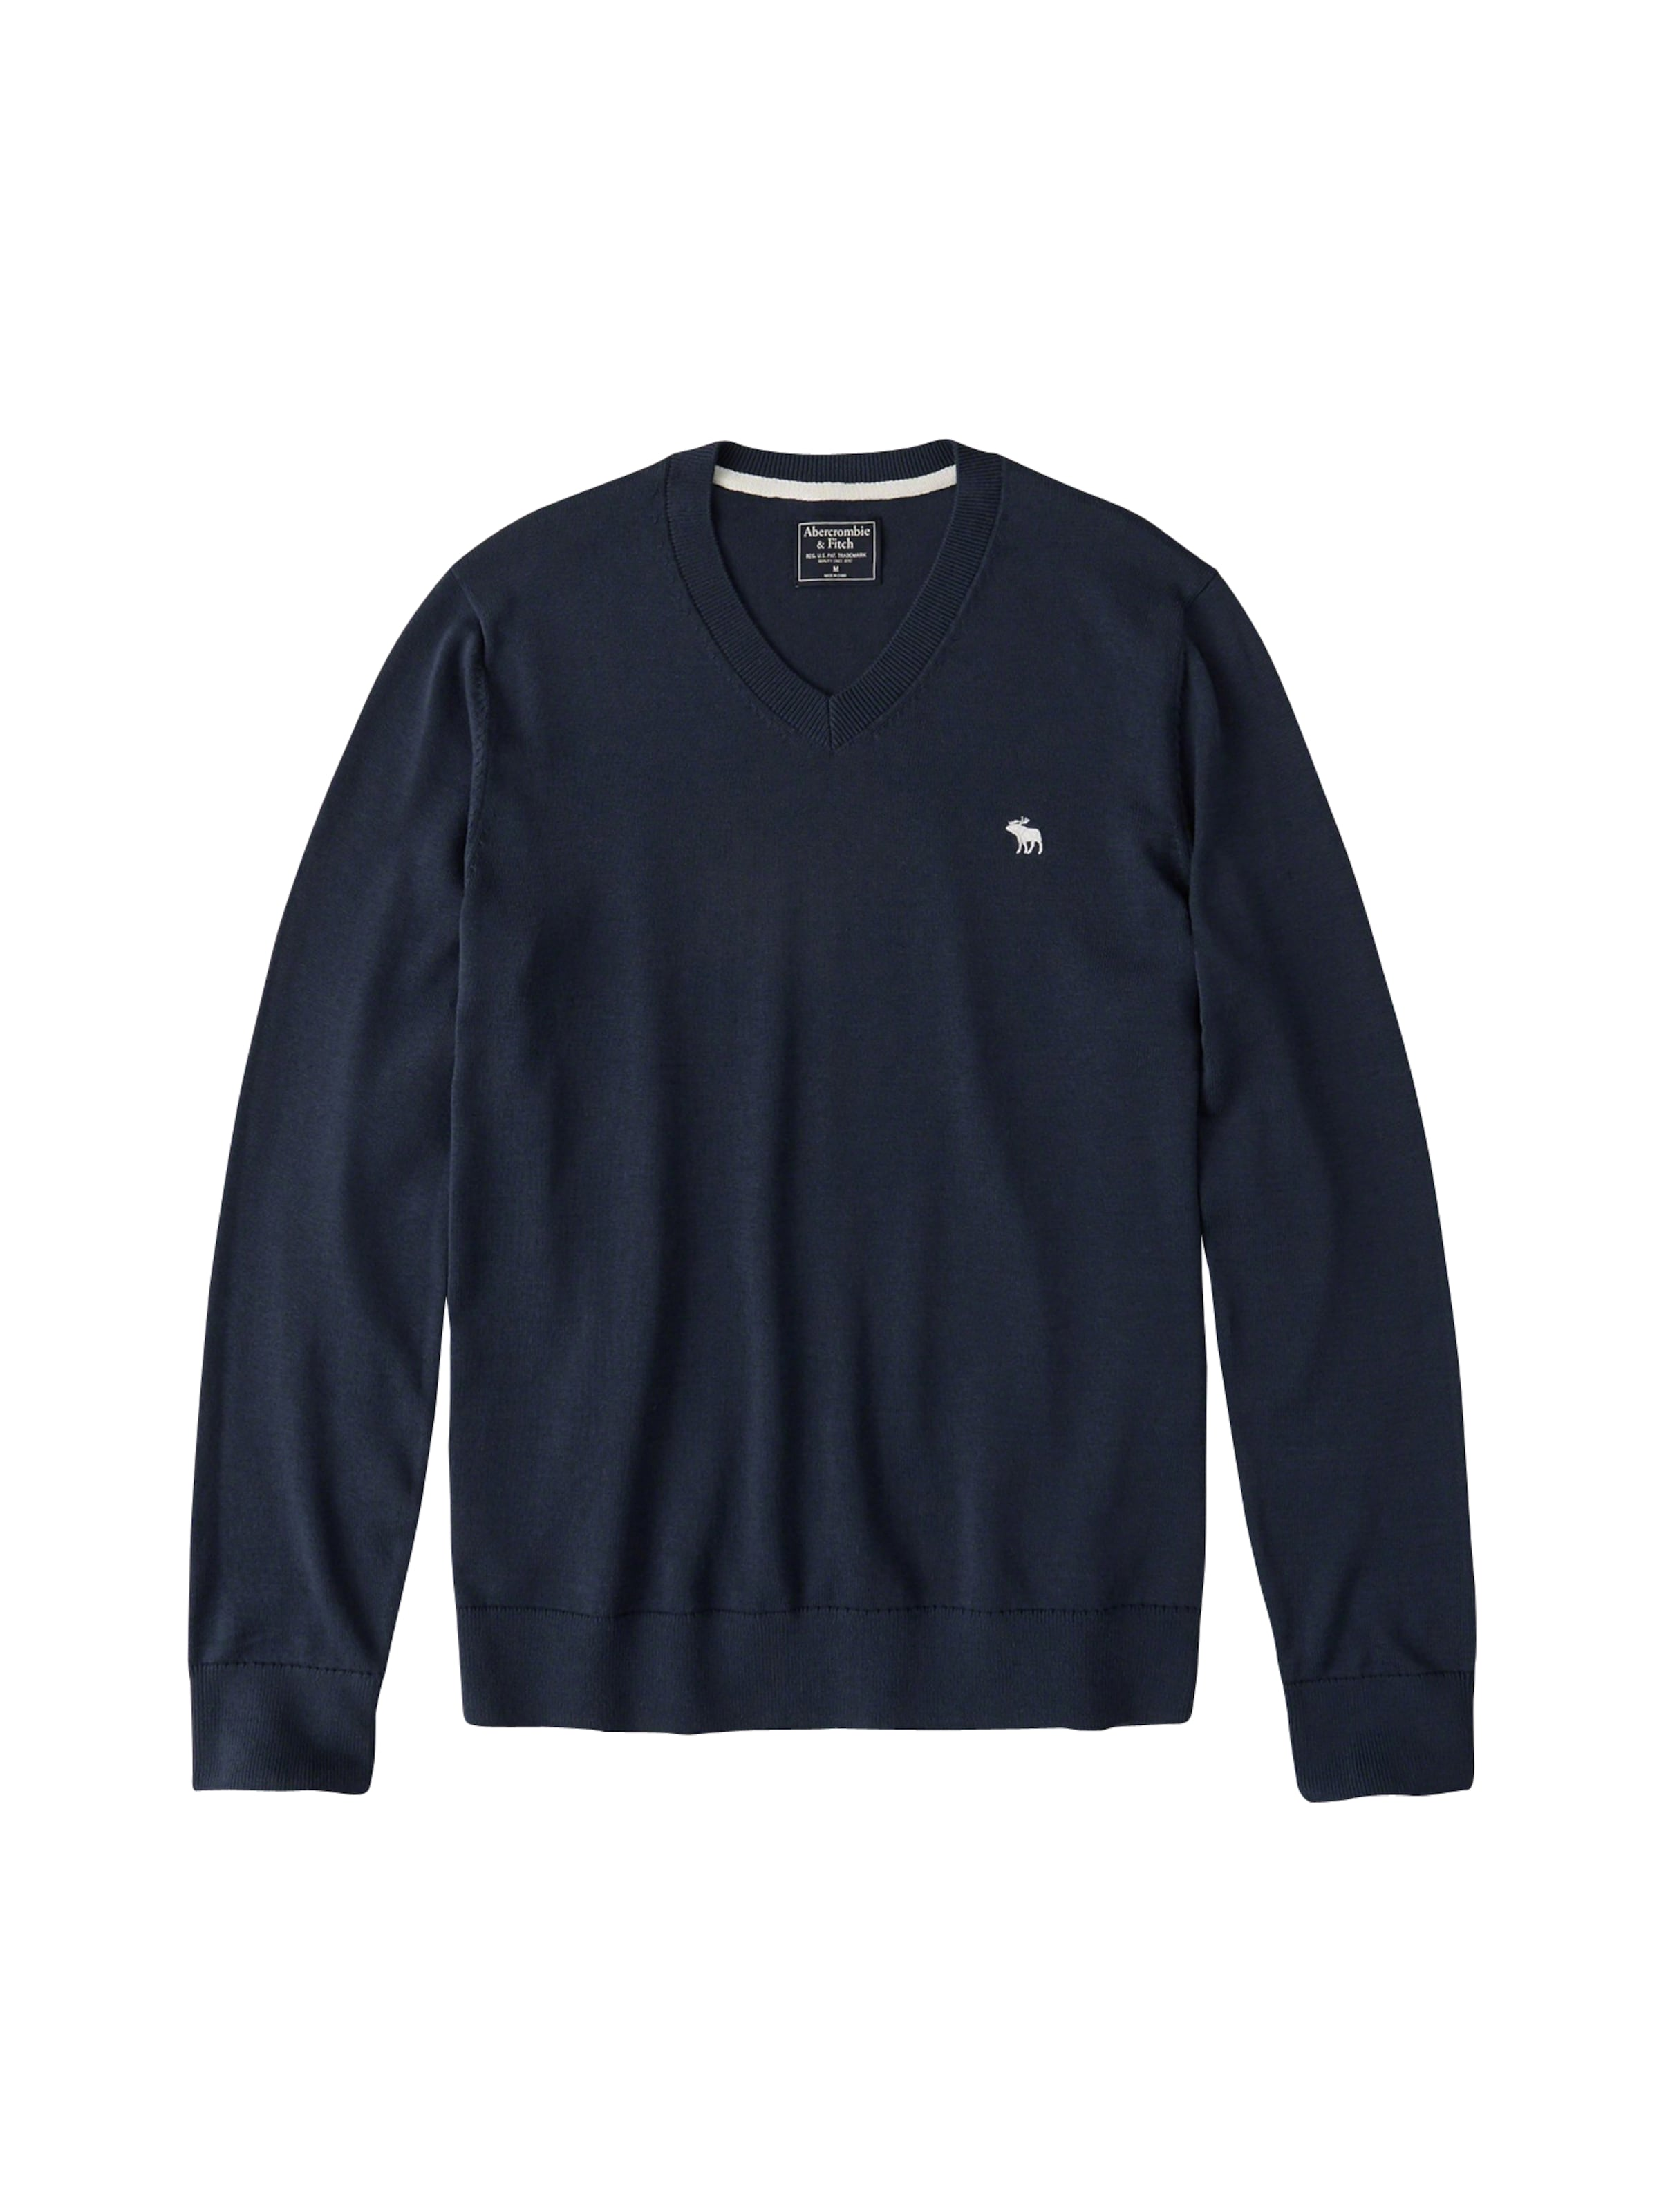 Abercrombieamp; Fitch Abercrombieamp; Pullover Fitch Navy In Abercrombieamp; Navy Pullover In QdBsCthxr